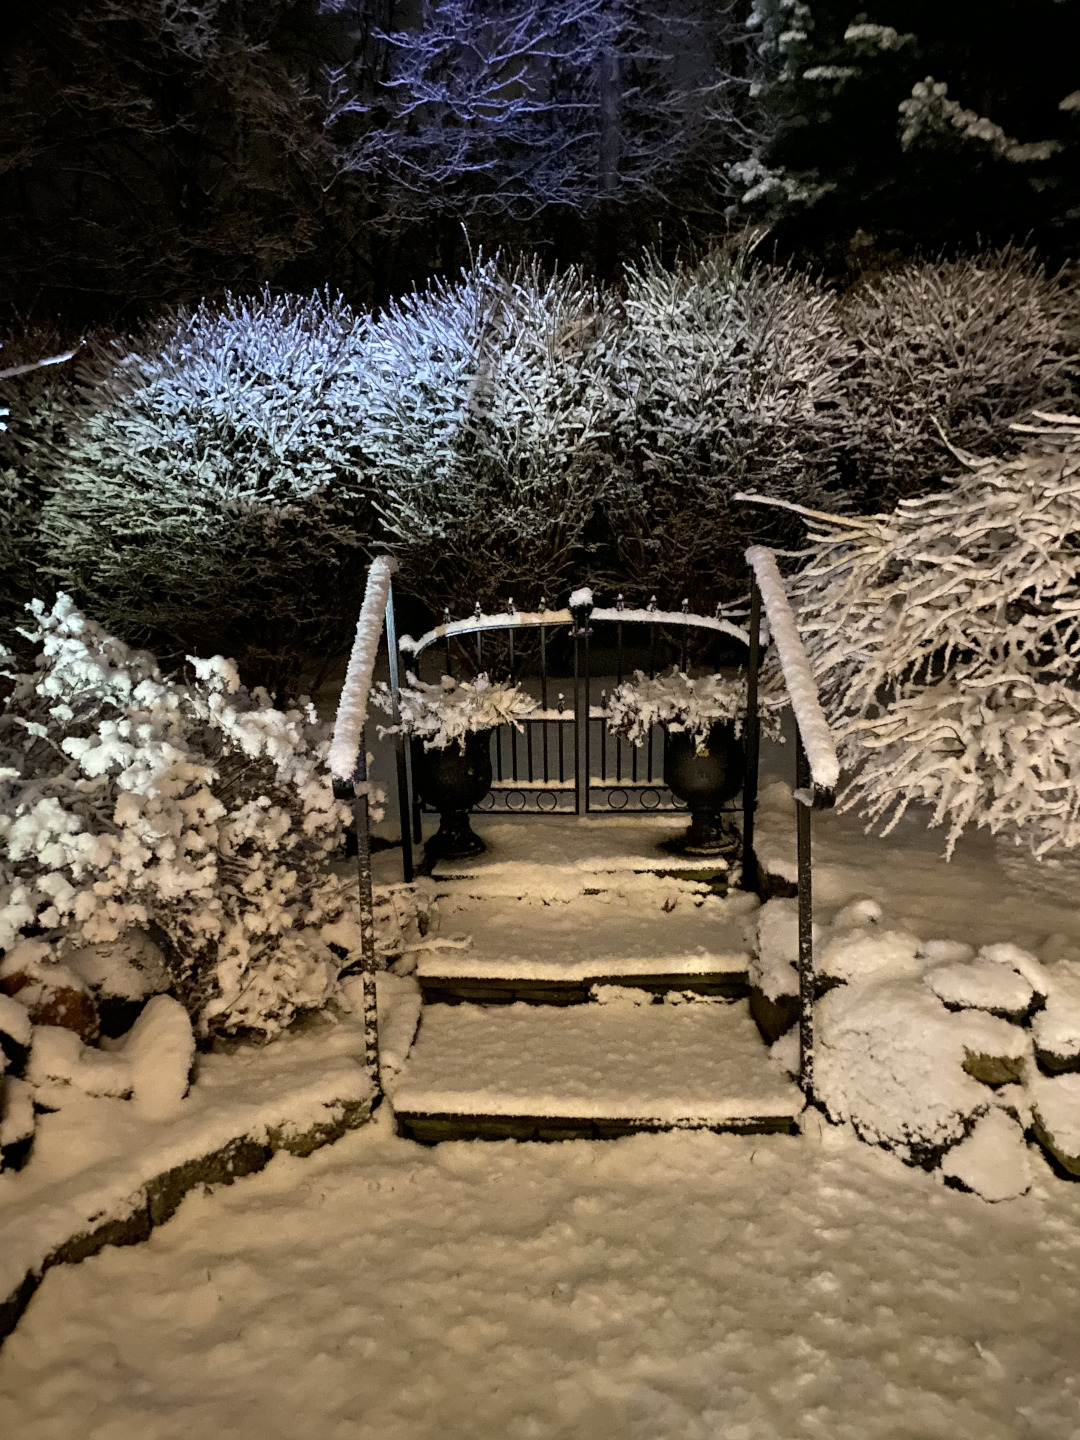 Garden with snow-covered bushes and steps